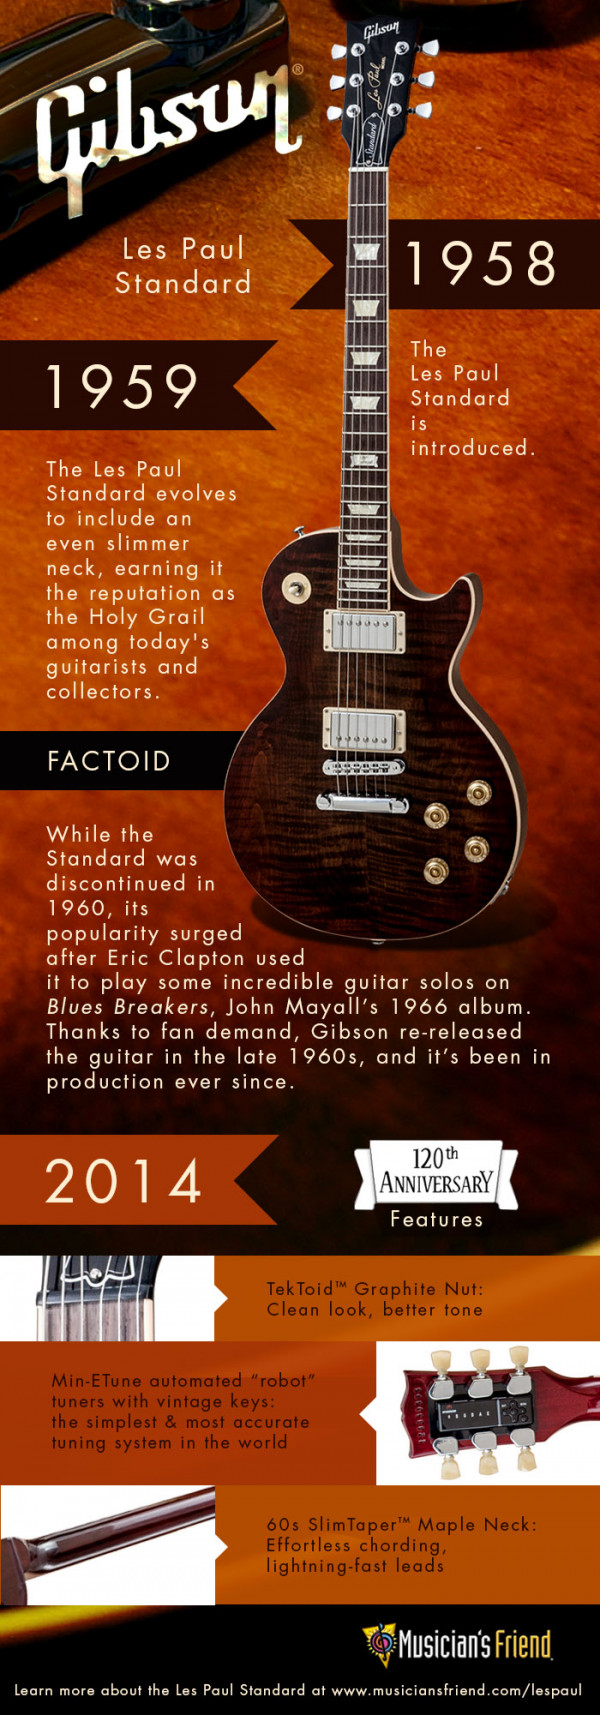 The Gibson Les Paul Standard 120th Anniversary Edition